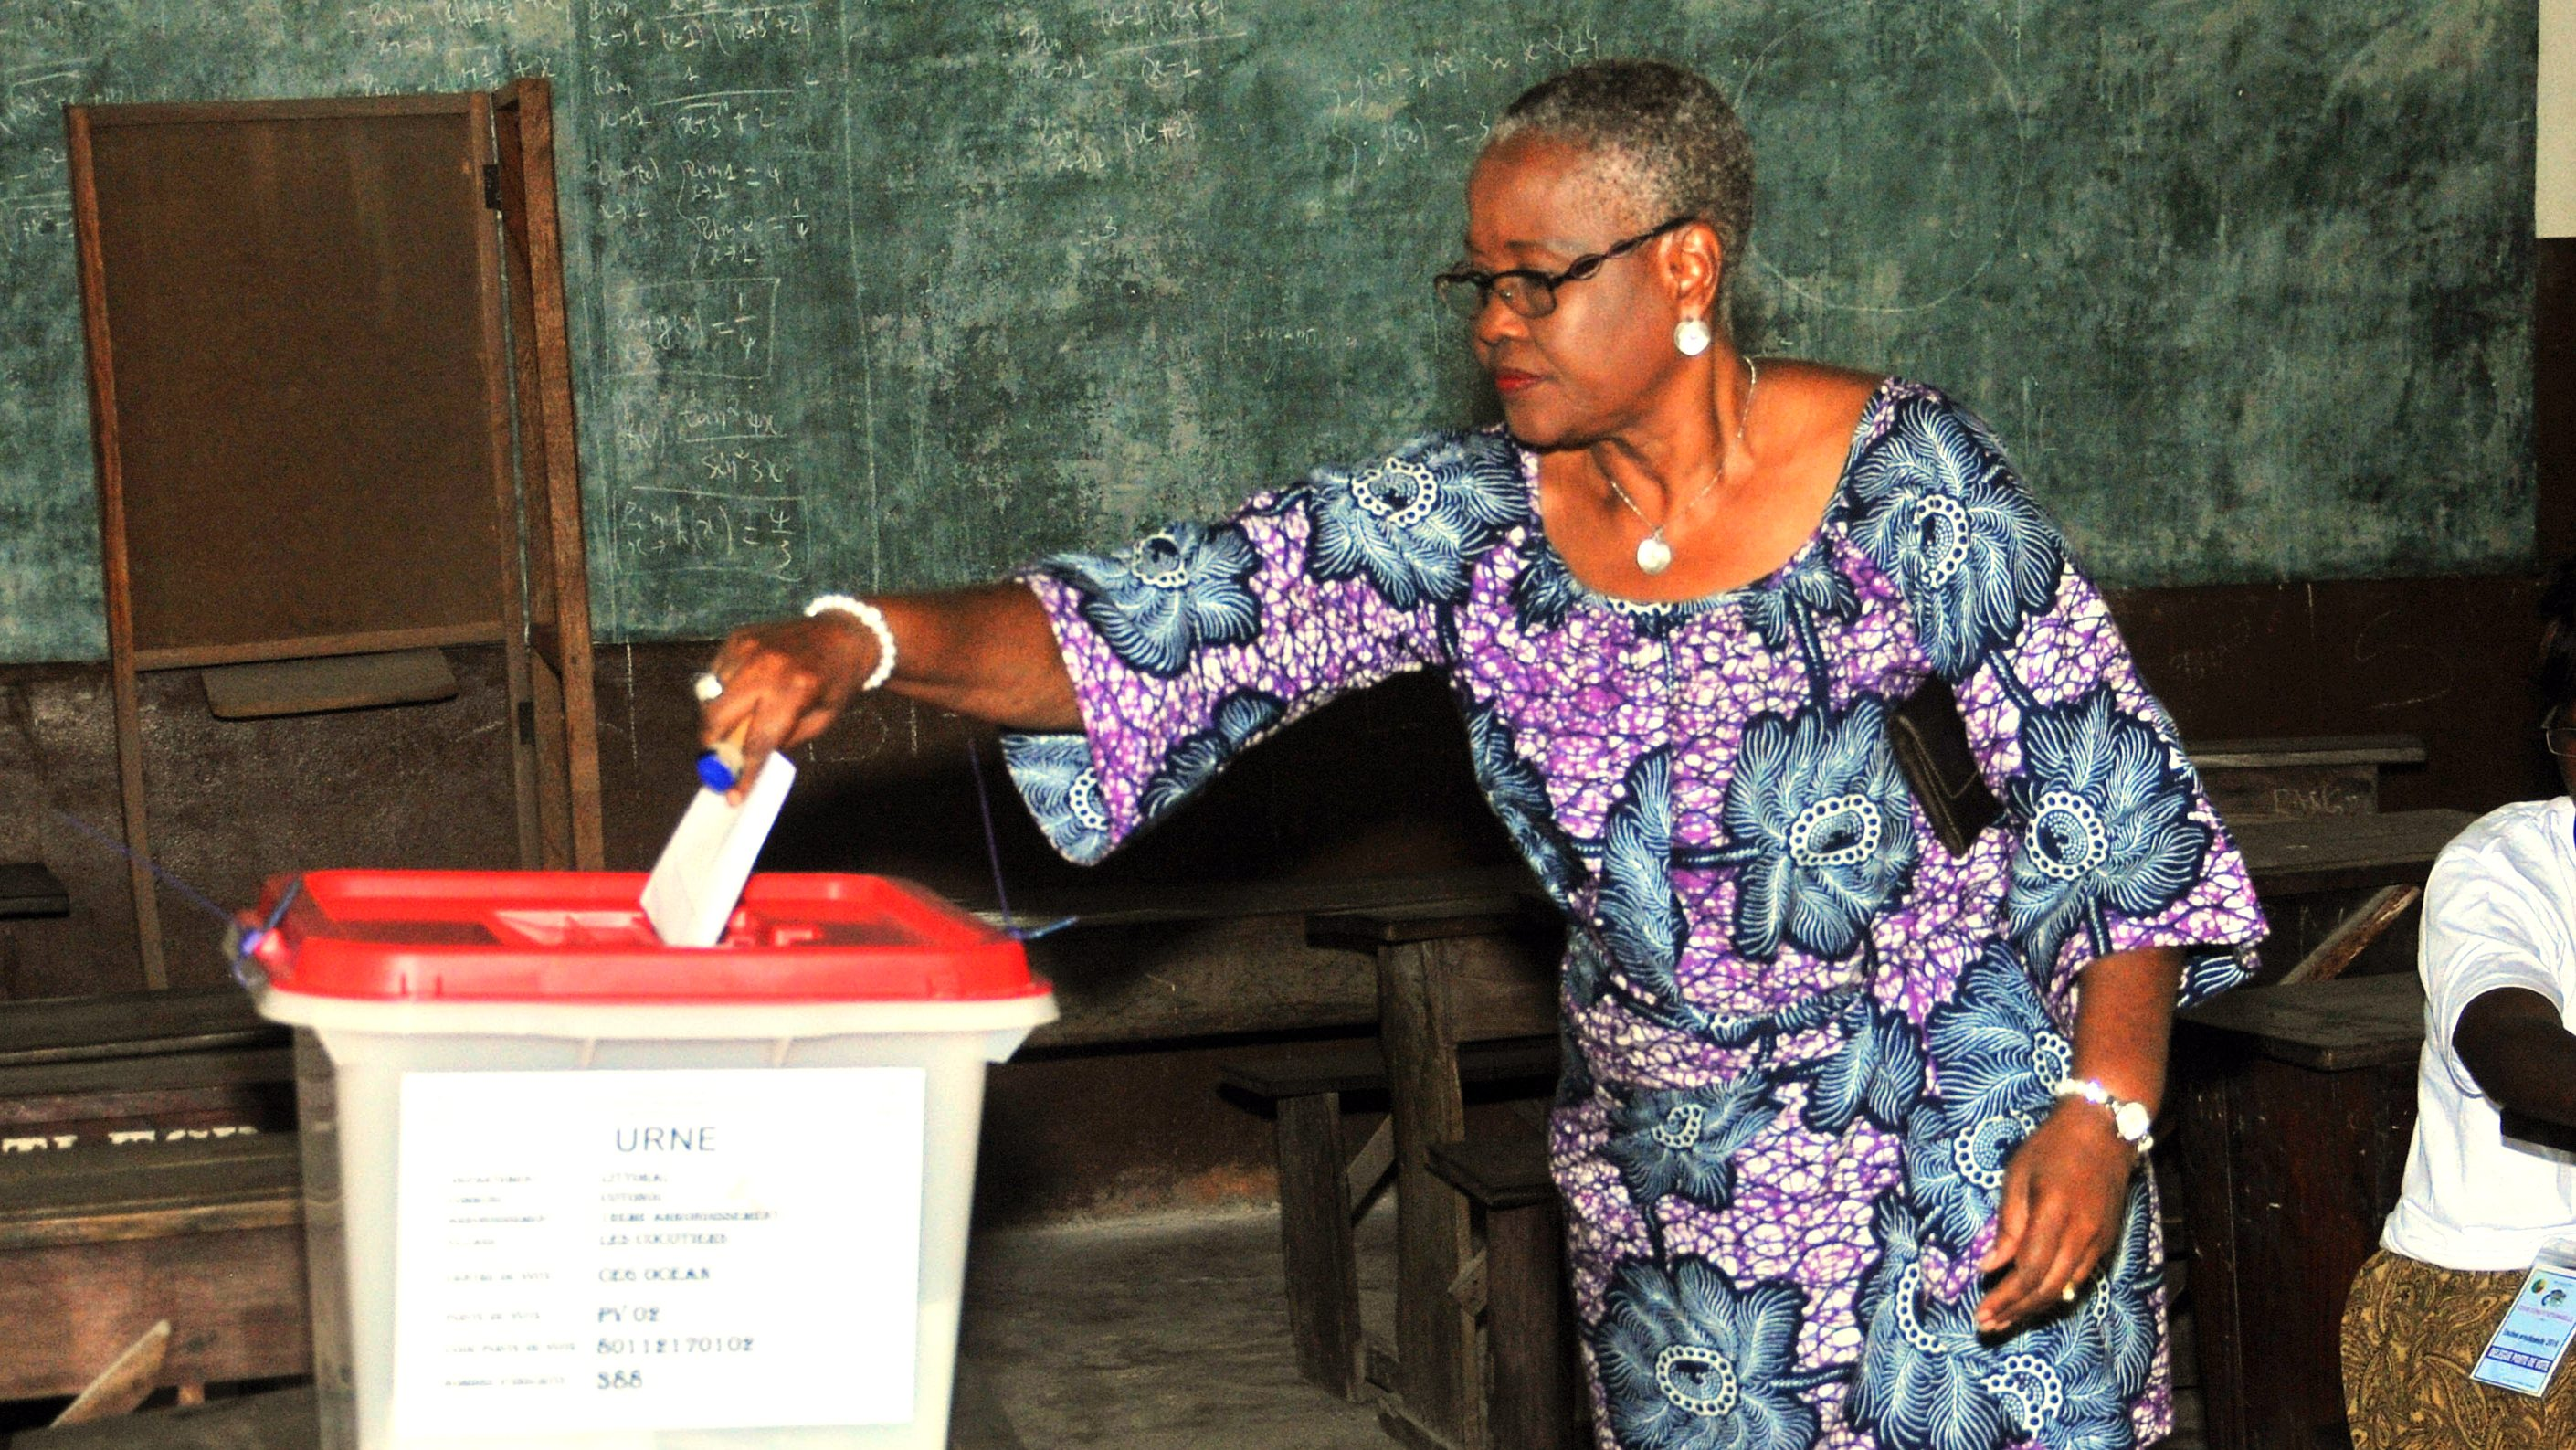 A woman cast her ballot during elections in Cotonou, Benin, Sunday, March 6, 2016. Benin citizens voted Sunday in an election to choose a successor to the West African nation's president, who is stepping down after two terms.